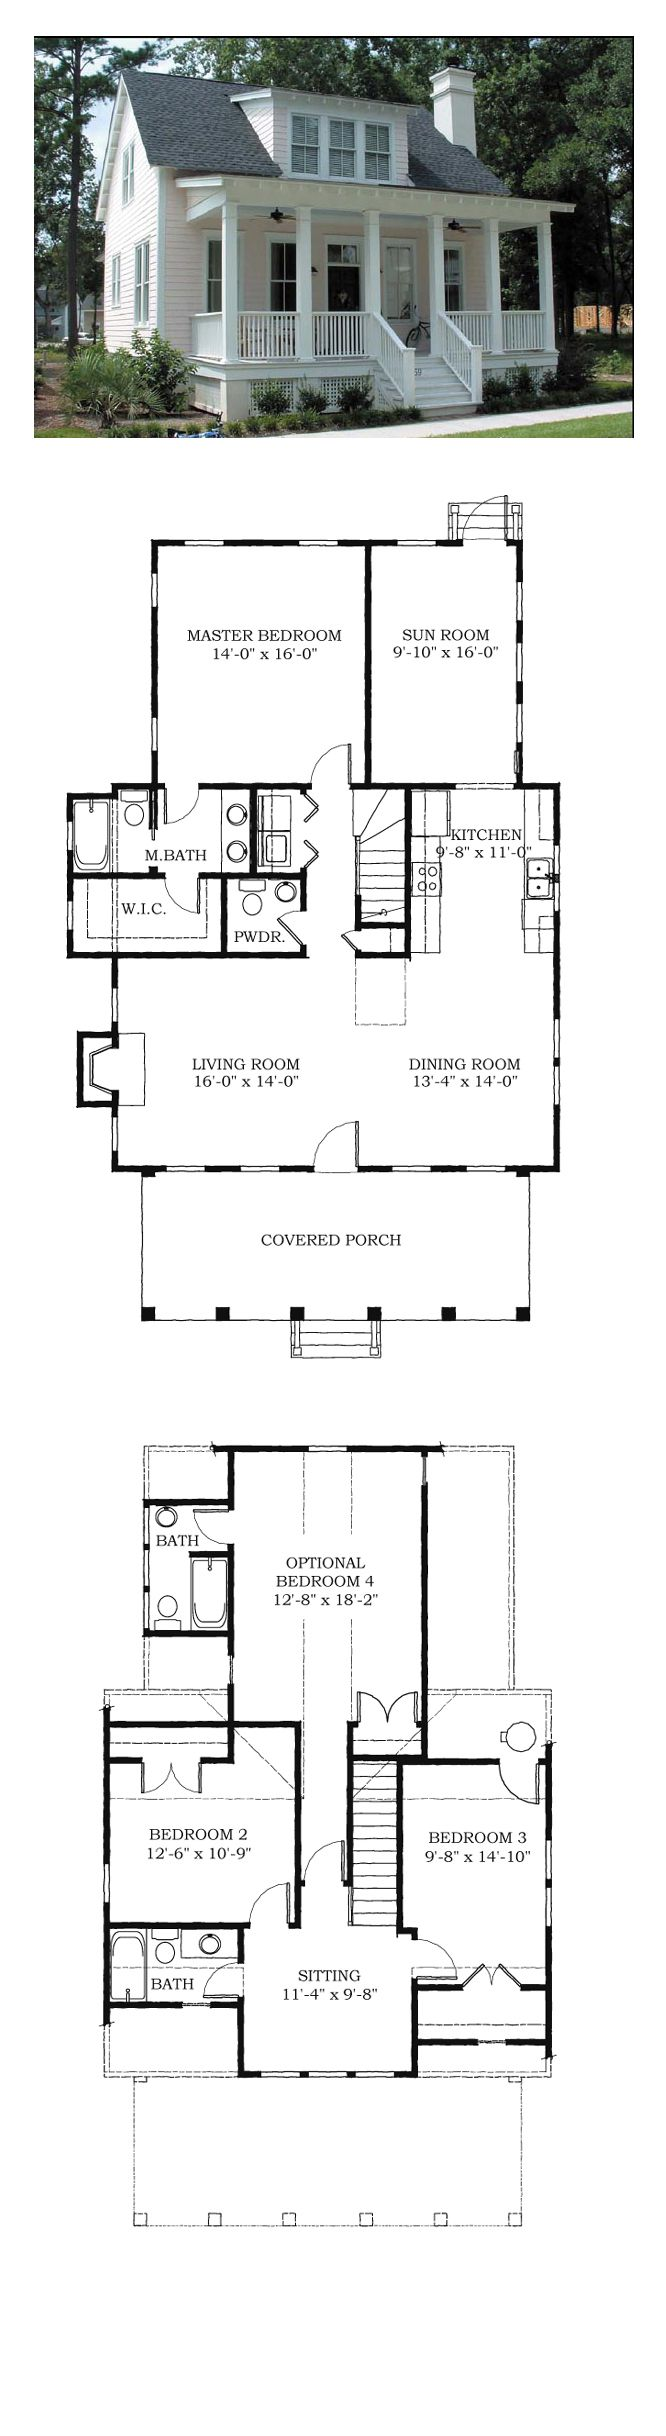 cool house plan id chp 38703 total living area 1783 sq. beautiful ideas. Home Design Ideas